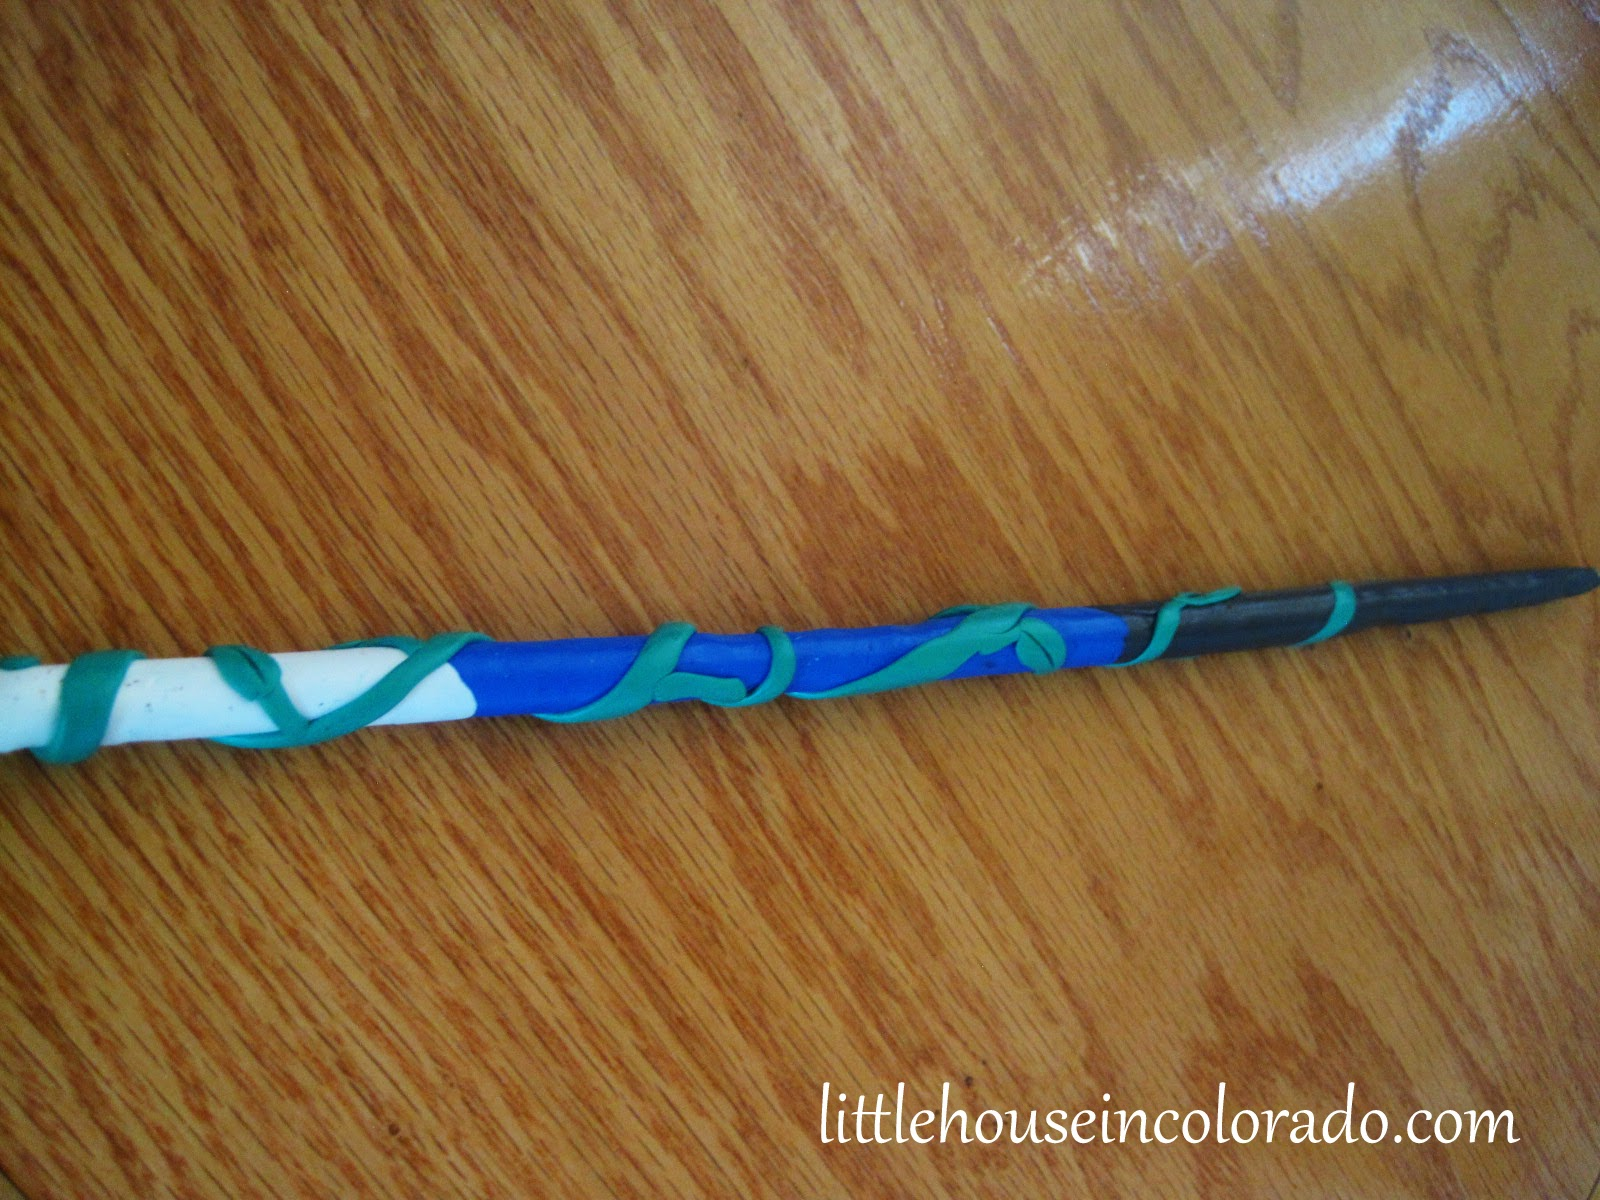 Little house in colorado a harry potter birthday and for Birthday wand